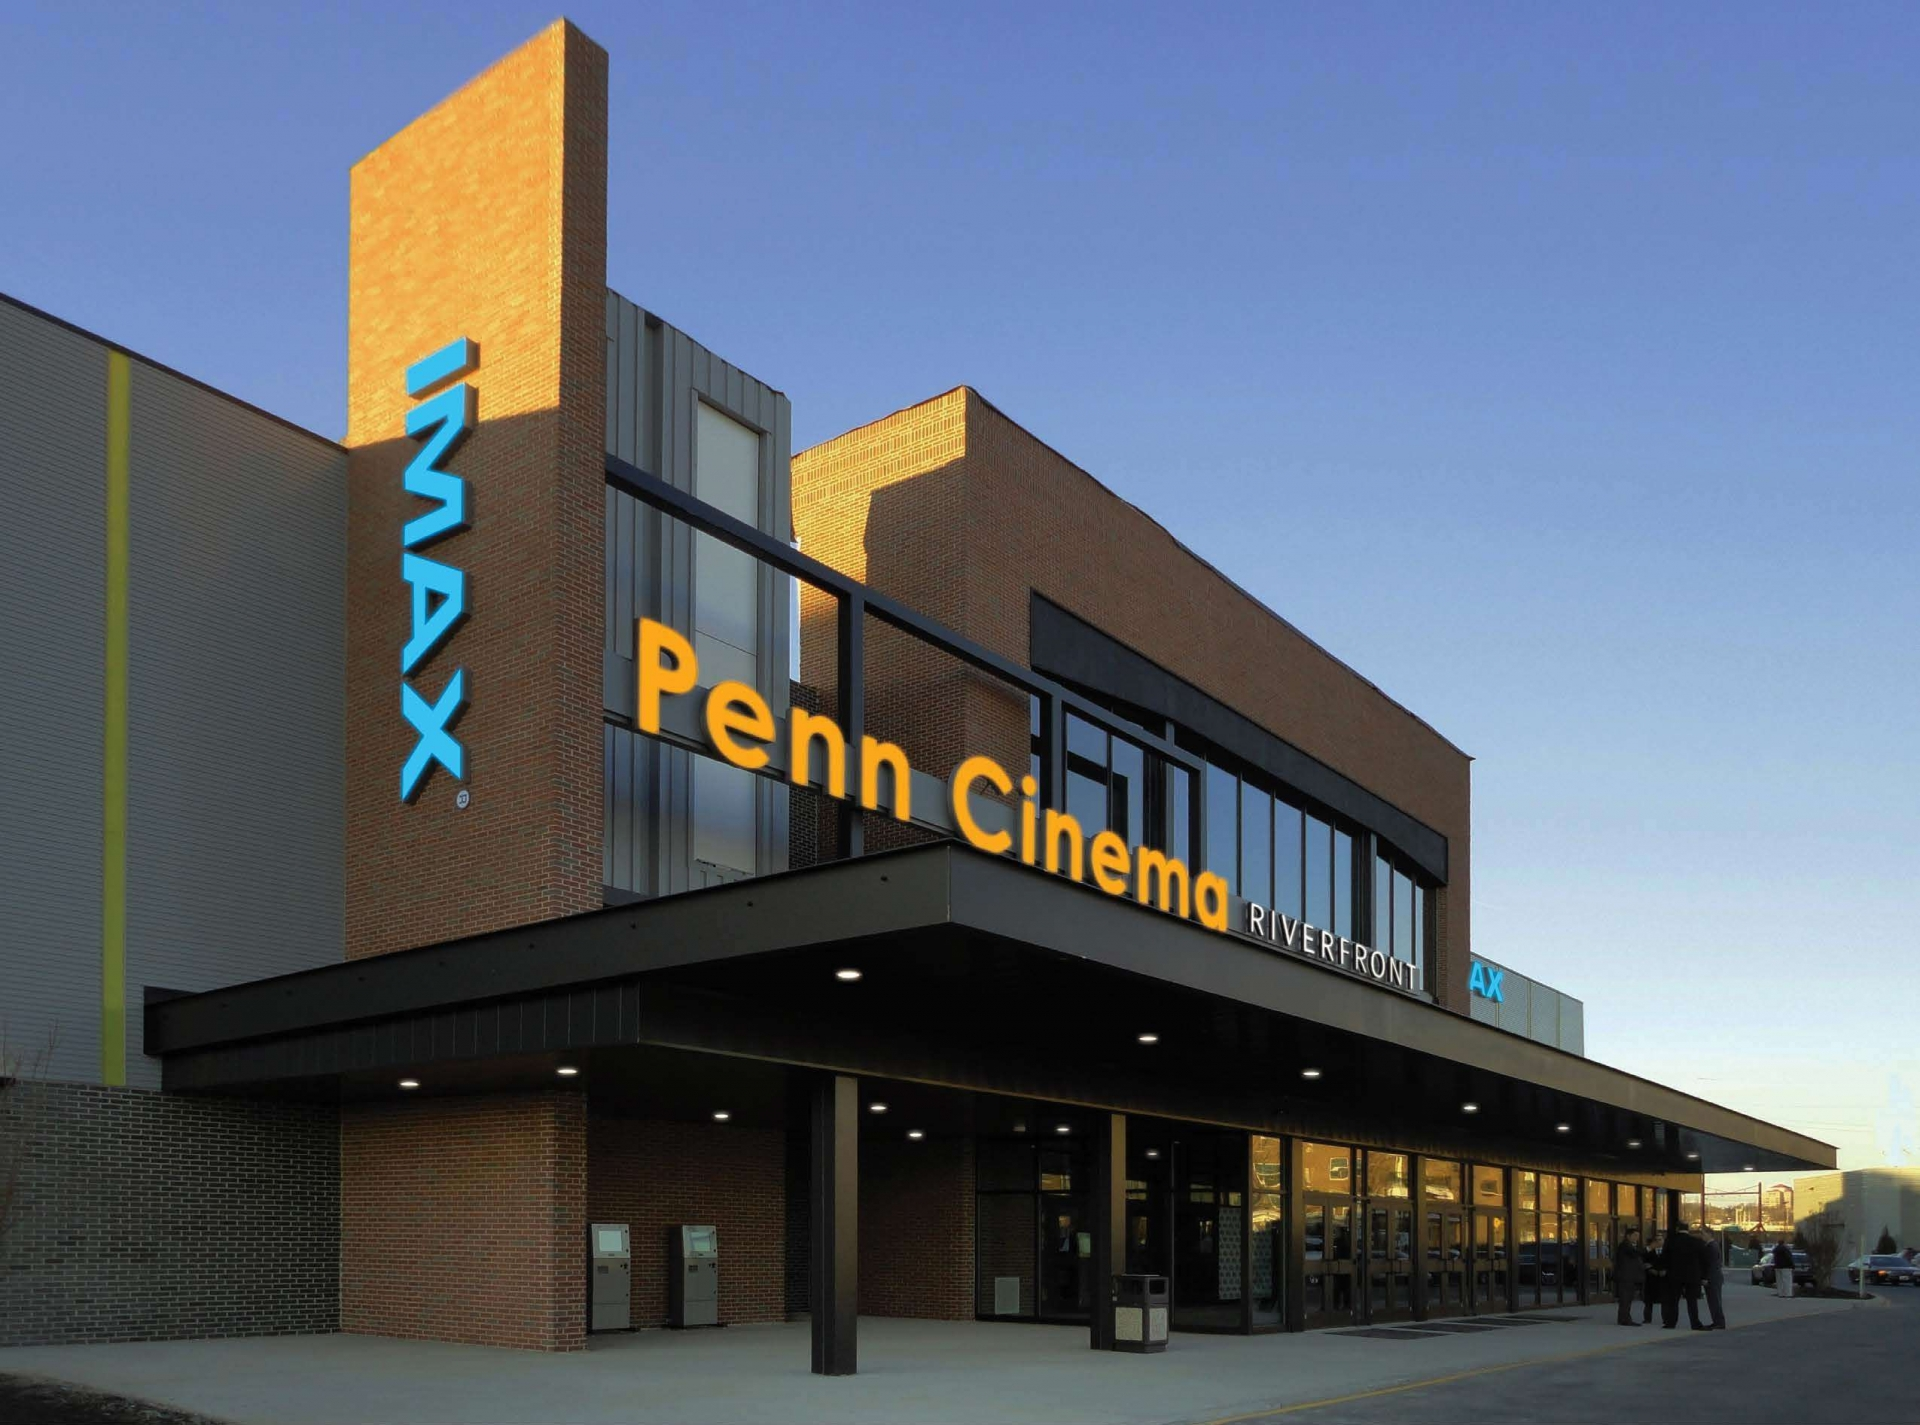 Sensory Sensitive Cinema. In partnership with Aaron's Acres, Penn Cinema offers Sensory Sensitive shows on the first Saturday of each month at 10am. Lights will remain on and the volume will be turned down to provide a safe and comfortable viewing experience for all.